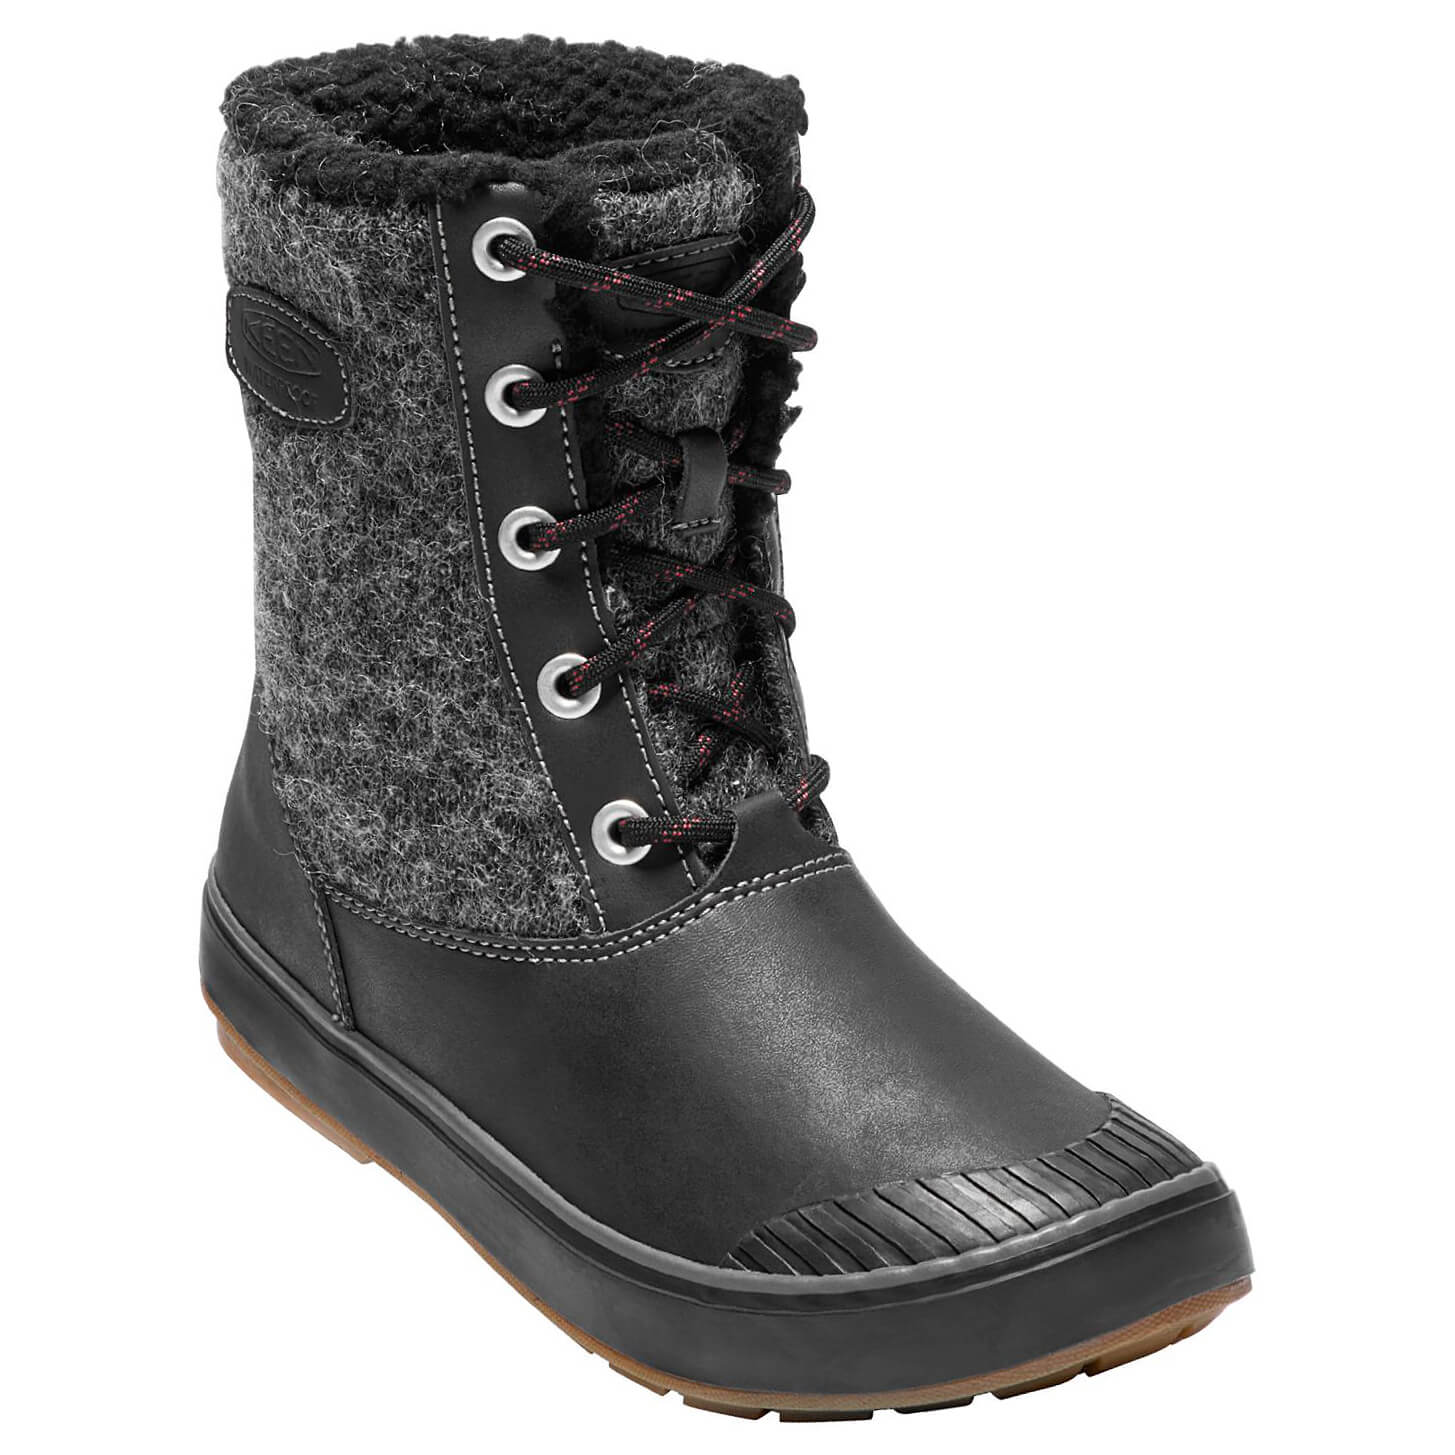 Keen Elsa Boot WP - Winter boots Women's | Free EU